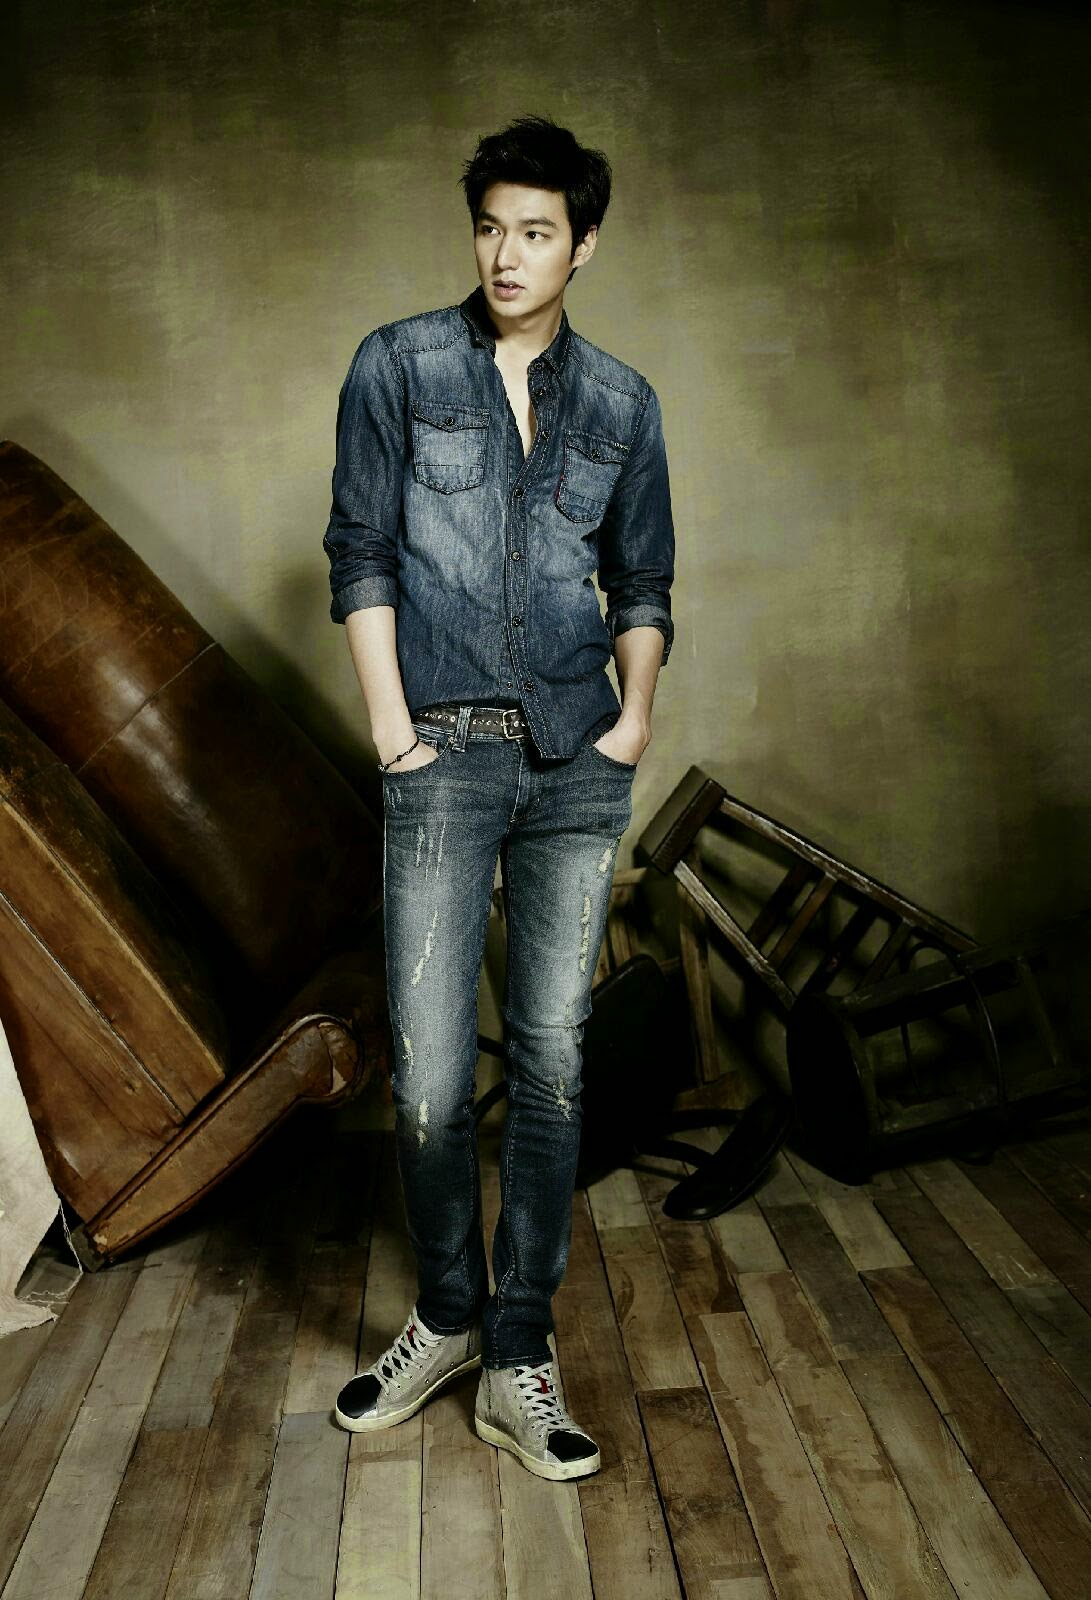 the imaginary world of monika lee min ho for quotguess jeans